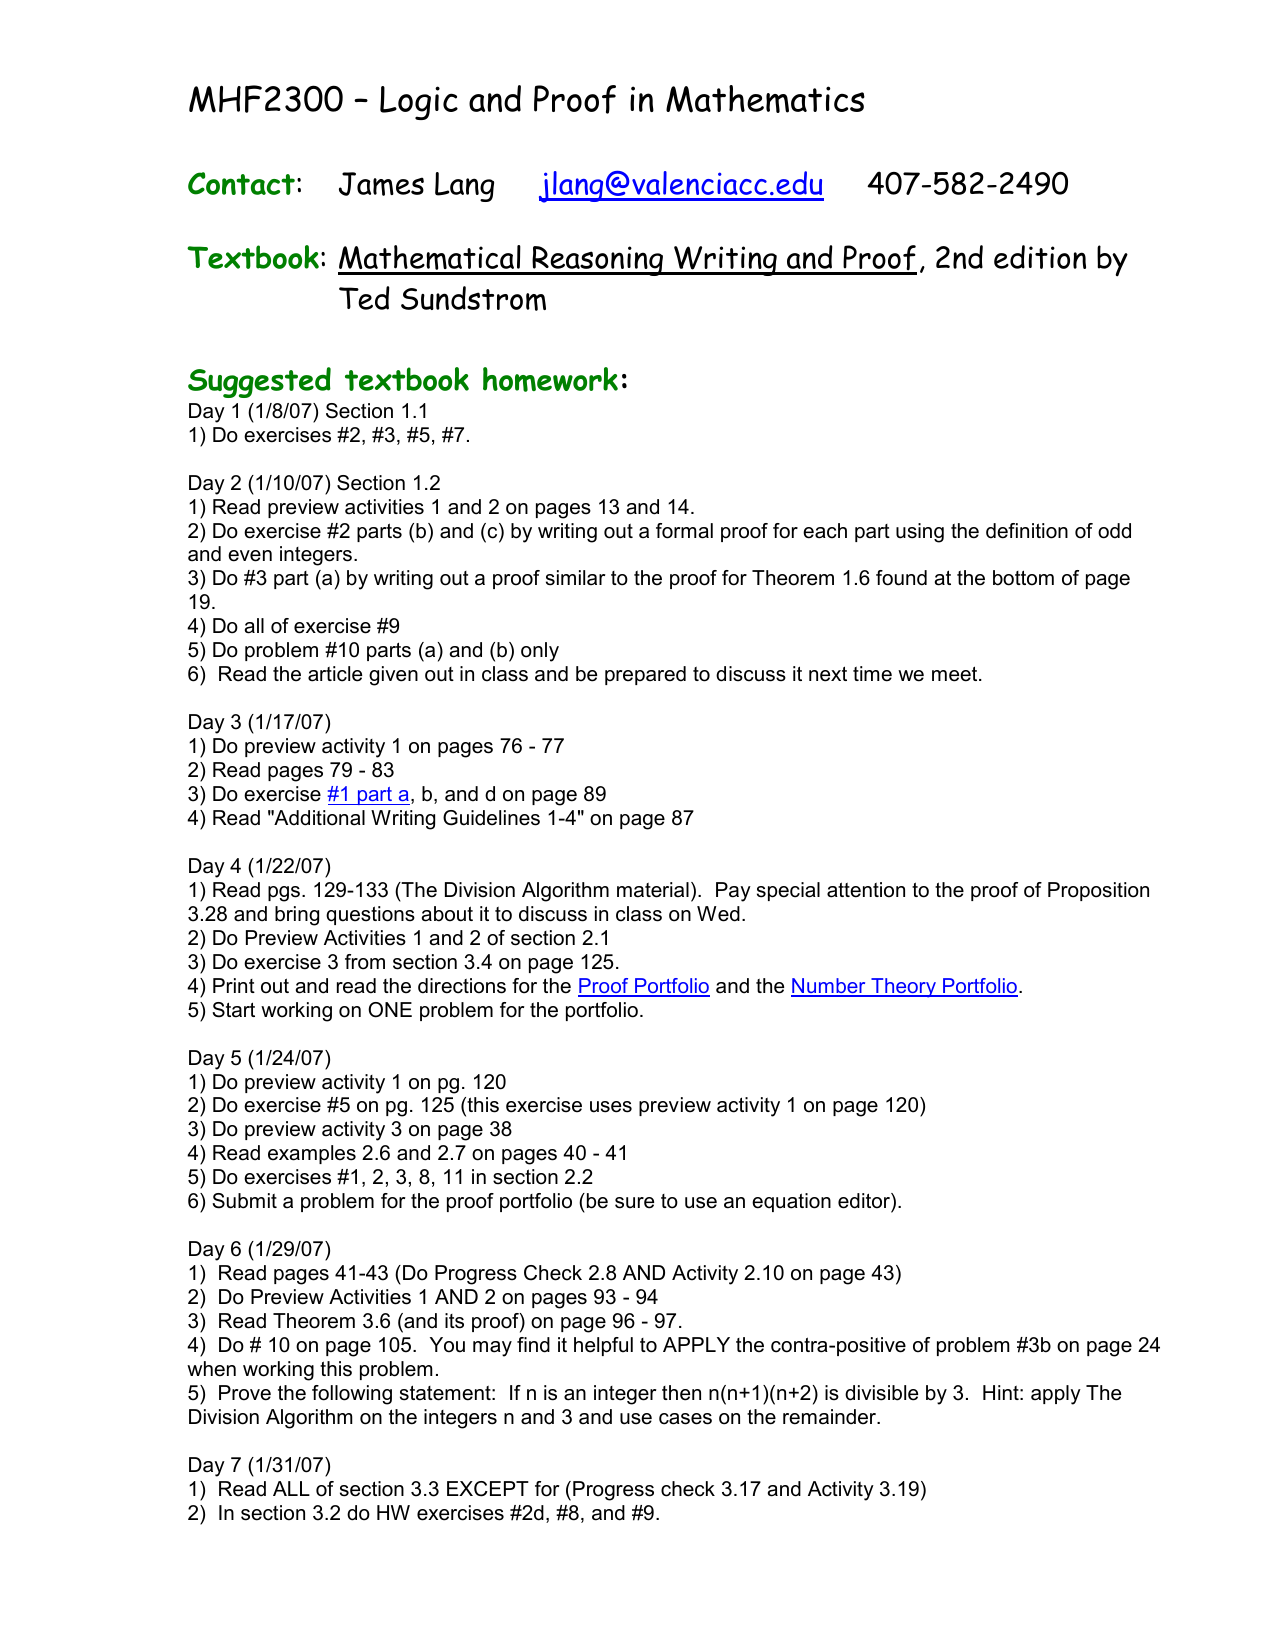 mathematical reasoning pdf